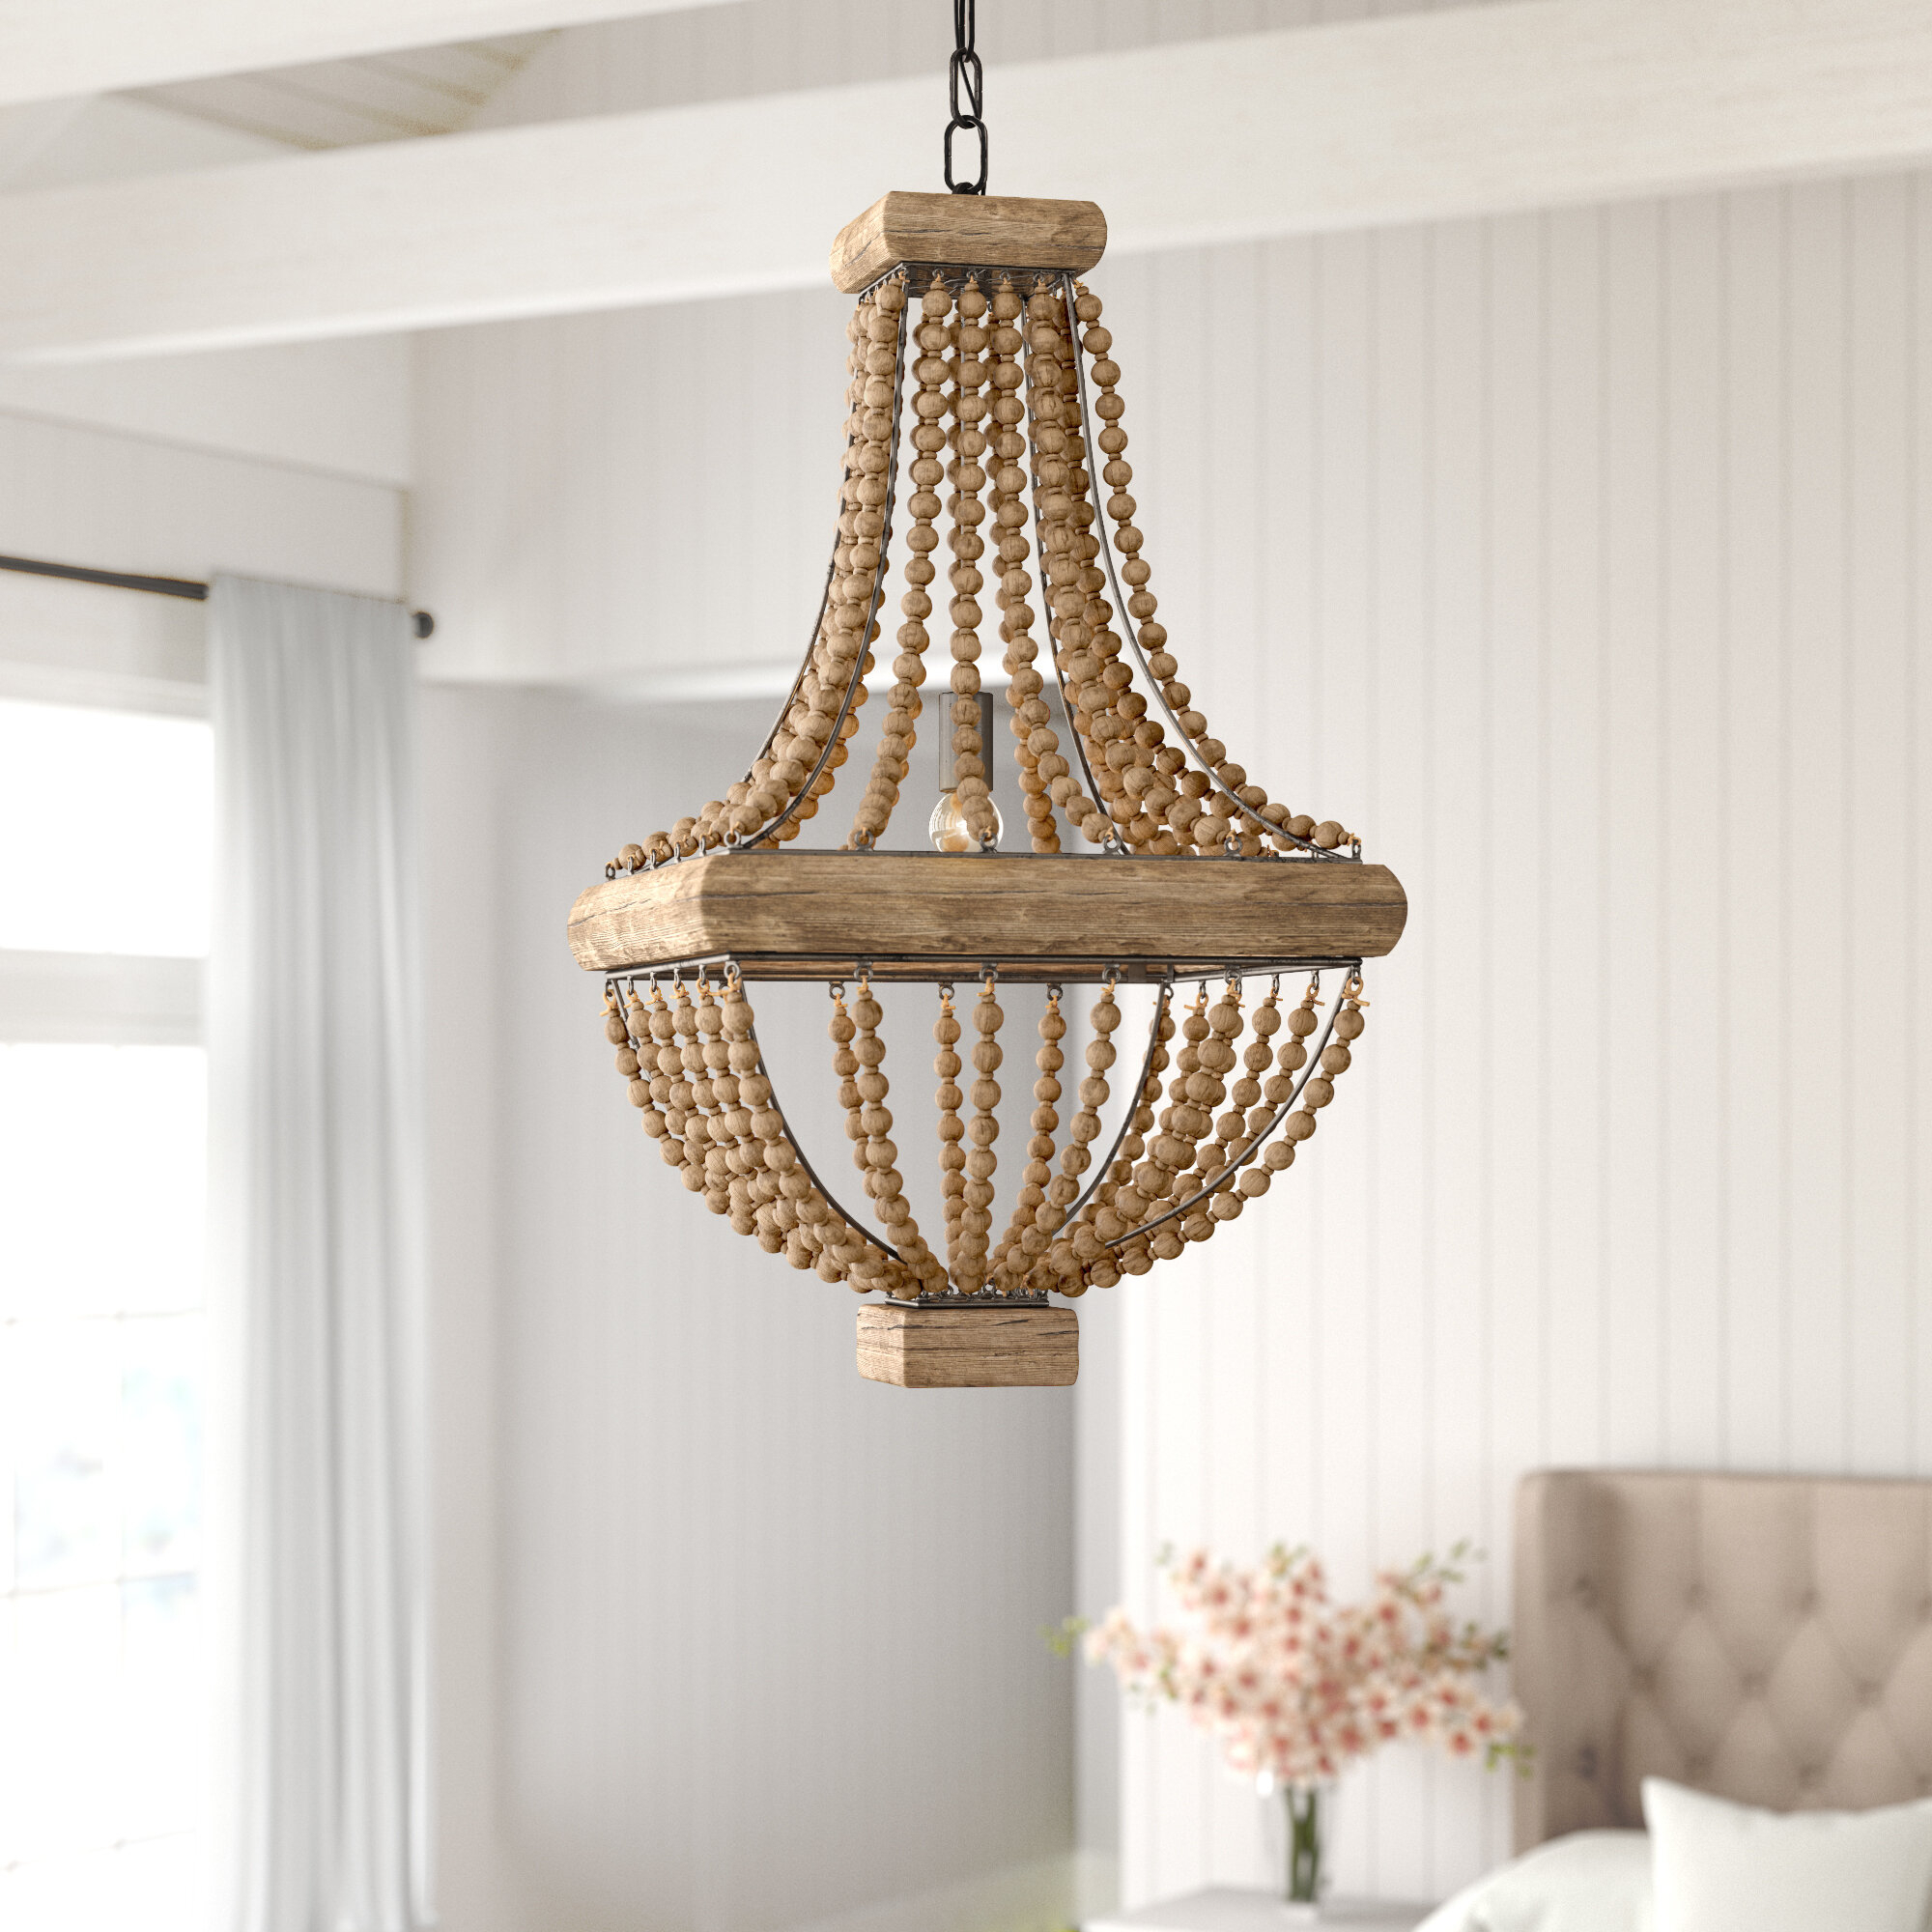 Brisa 1-Light Single Geometric Pendant in Spokane 1-Light Single Urn Pendants (Image 10 of 30)